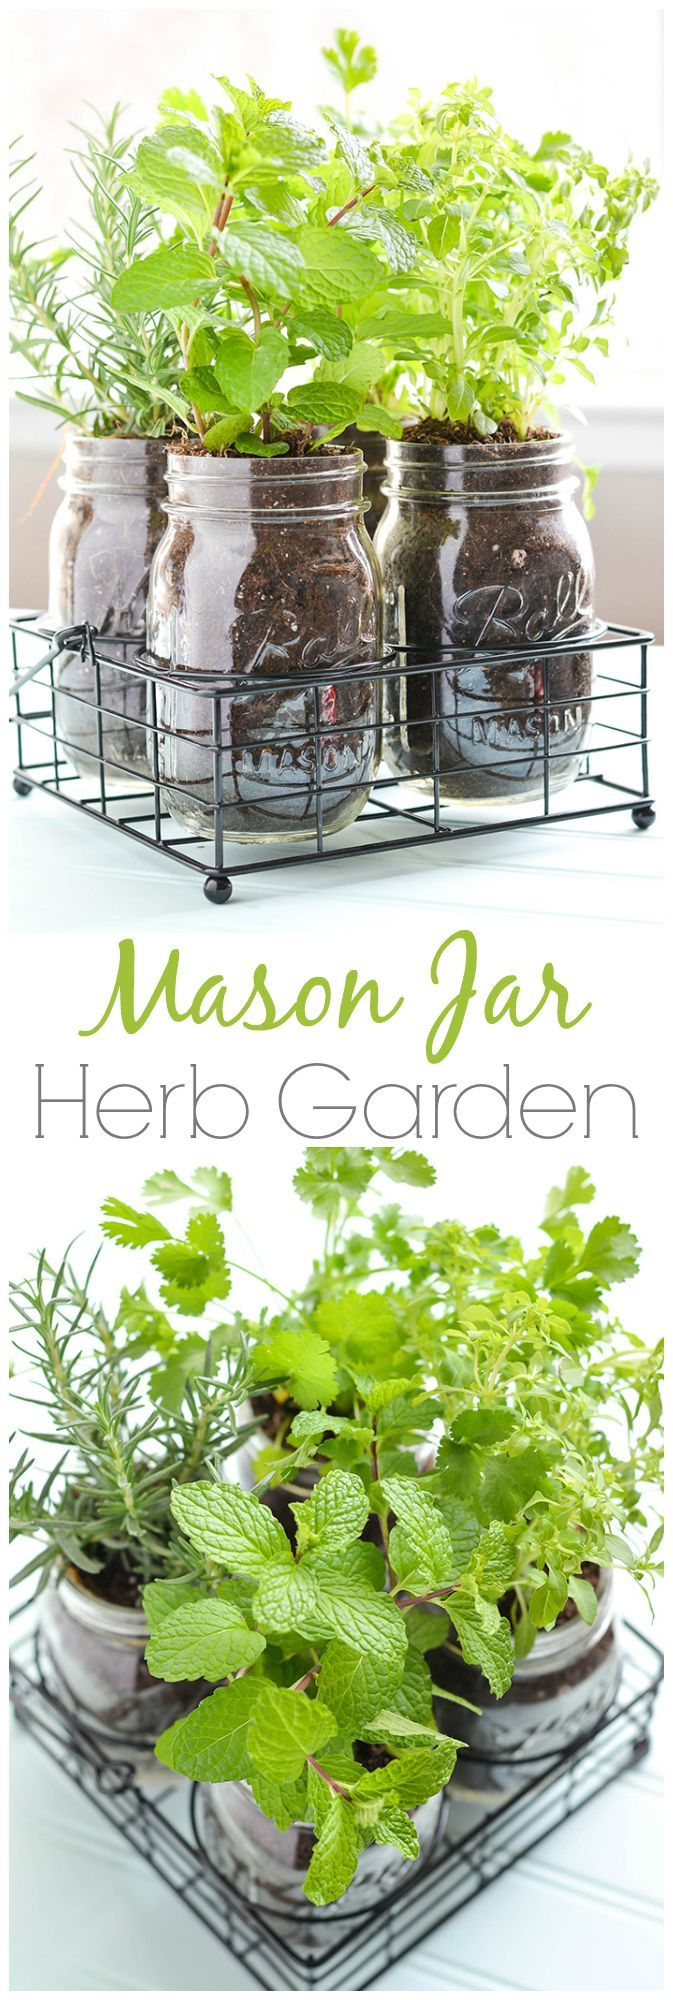 Apartment Garden Ideas small apartment garden ideas rooftop Diy Herb Garden In Mason Jars Crafts Unleashed